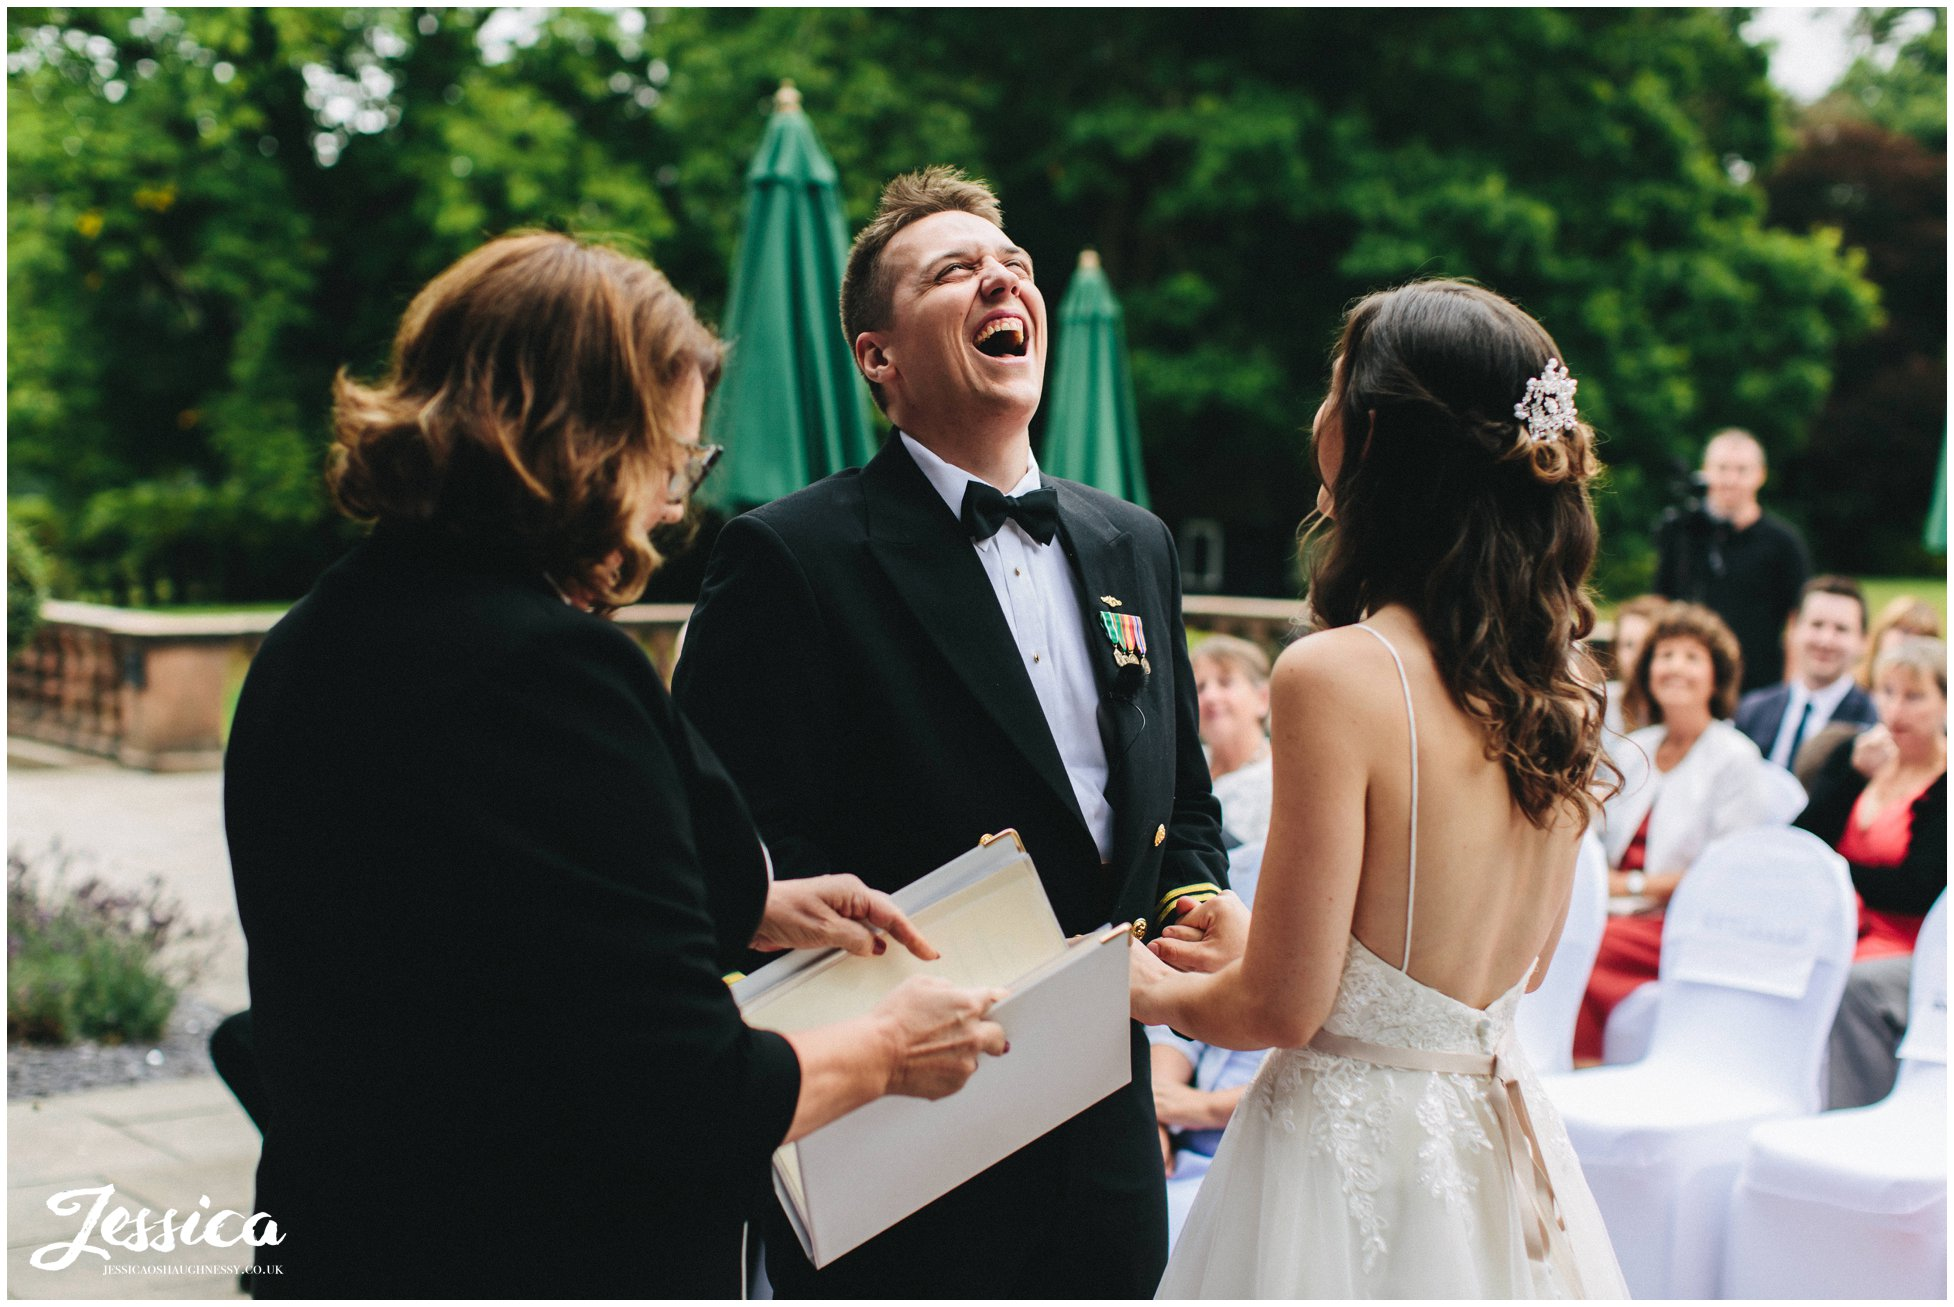 the groom laughs during the ceremony